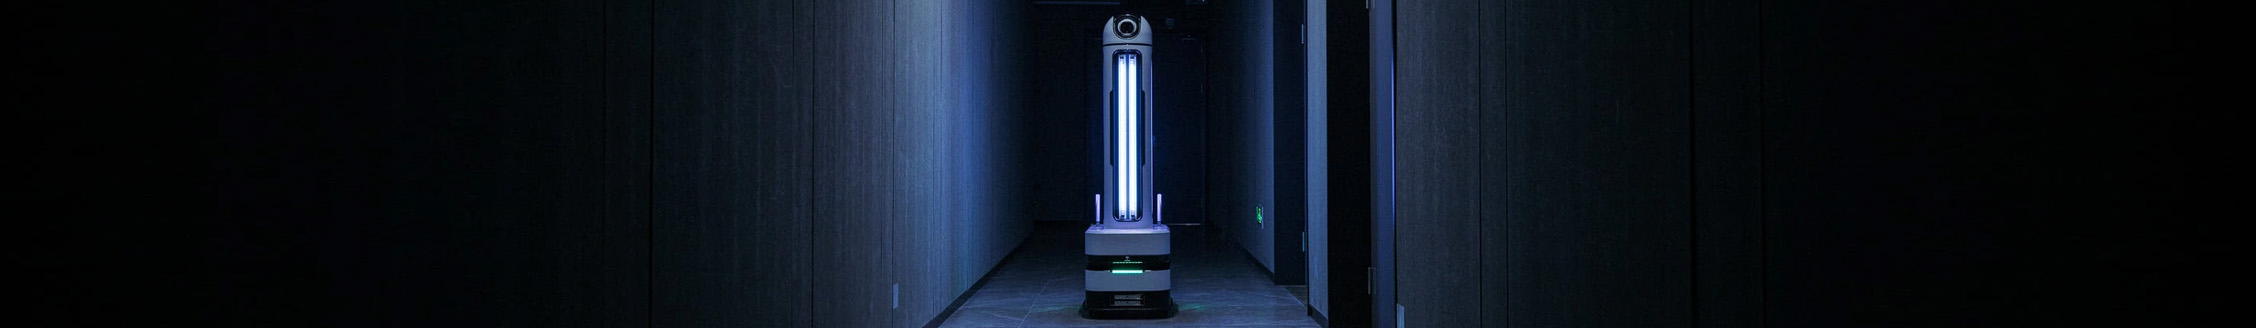 YouIbot : Raced to Develop Virus-Fighting Robotic Equipment in Two Weeks